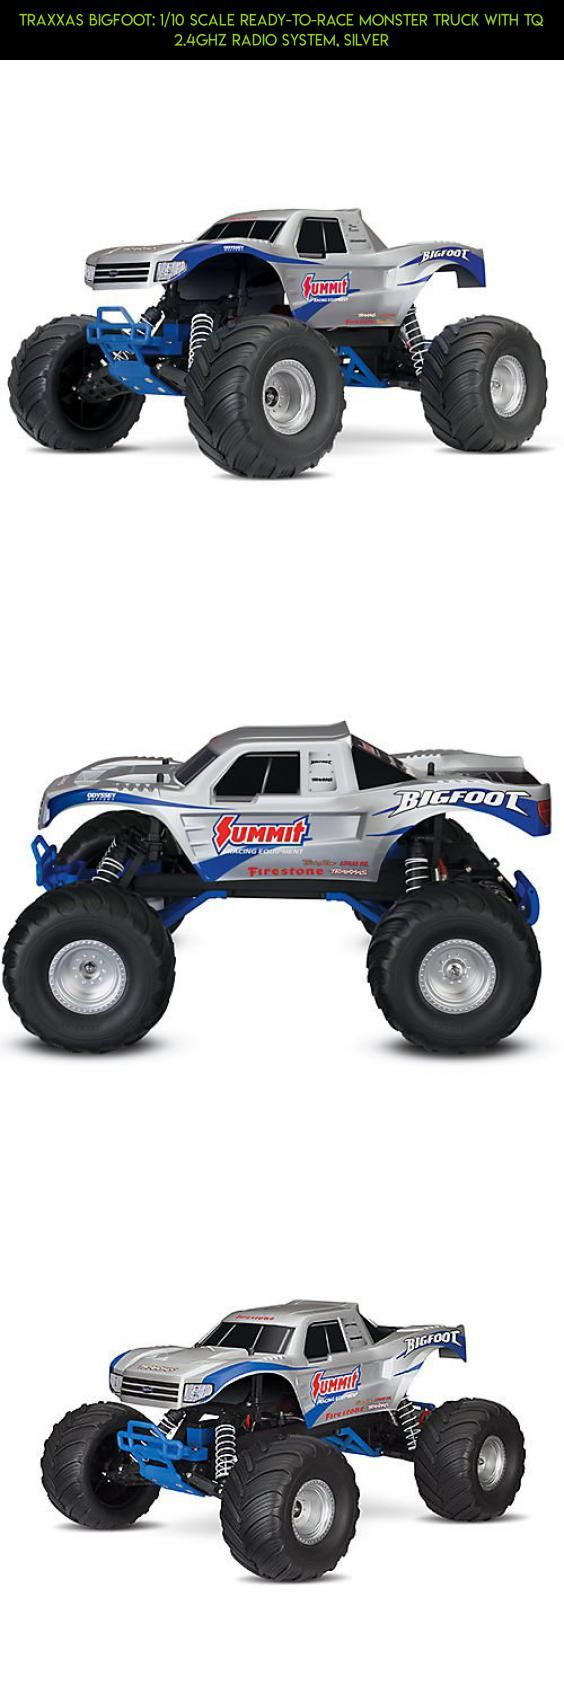 Traxxas Bigfoot: 1/10 Scale Ready-To-Race Monster Truck with Tq 2.4Ghz Radio System, Silver #fpv #products #technology #traxxas #plans #shopping #tech #gadgets #parts #kit #bigfoot #camera #drone #racing